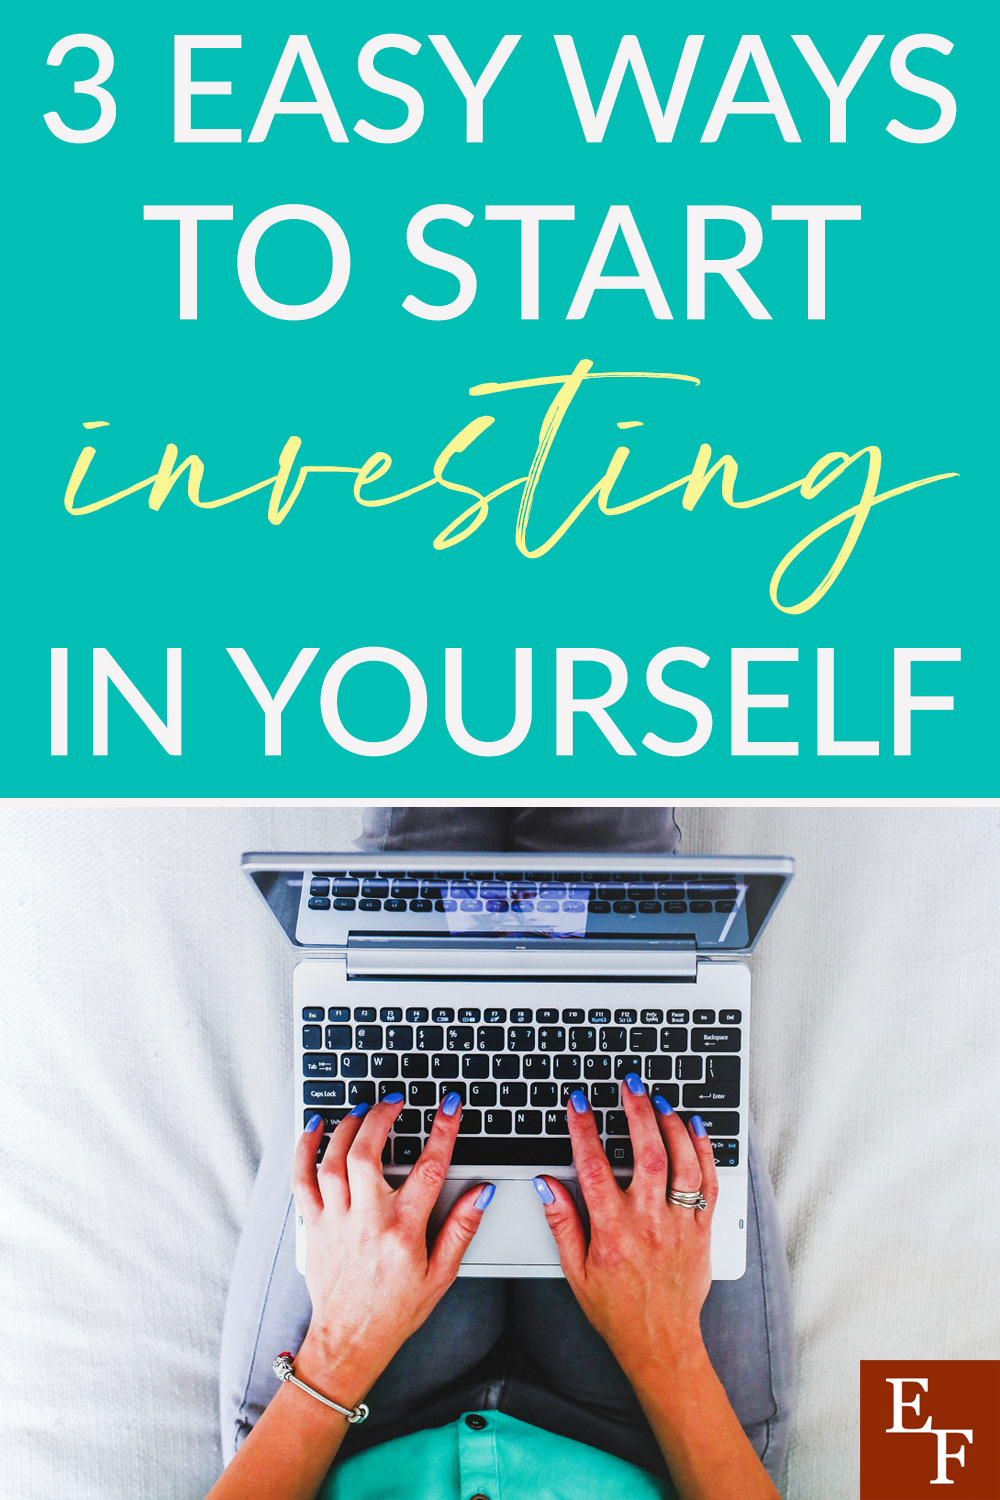 There is no time like the present to start investing in your future. So, here are 3 easy ways to start investing in yourself now.